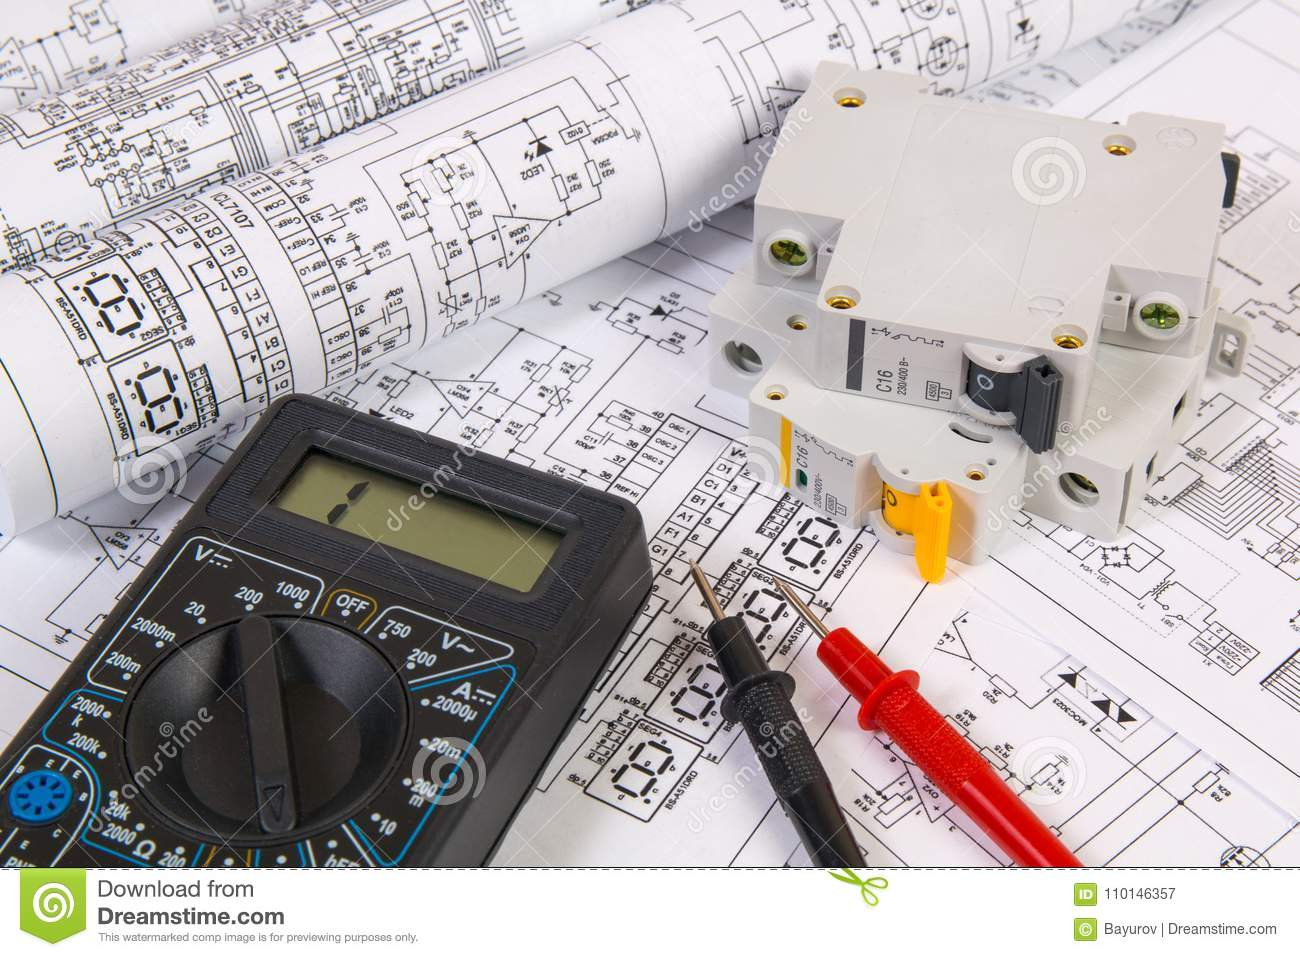 Electrical Engineering Design And Drawing Schematic In Cad Created With Elecdes Drawings Modular Circuit Breaker Digital